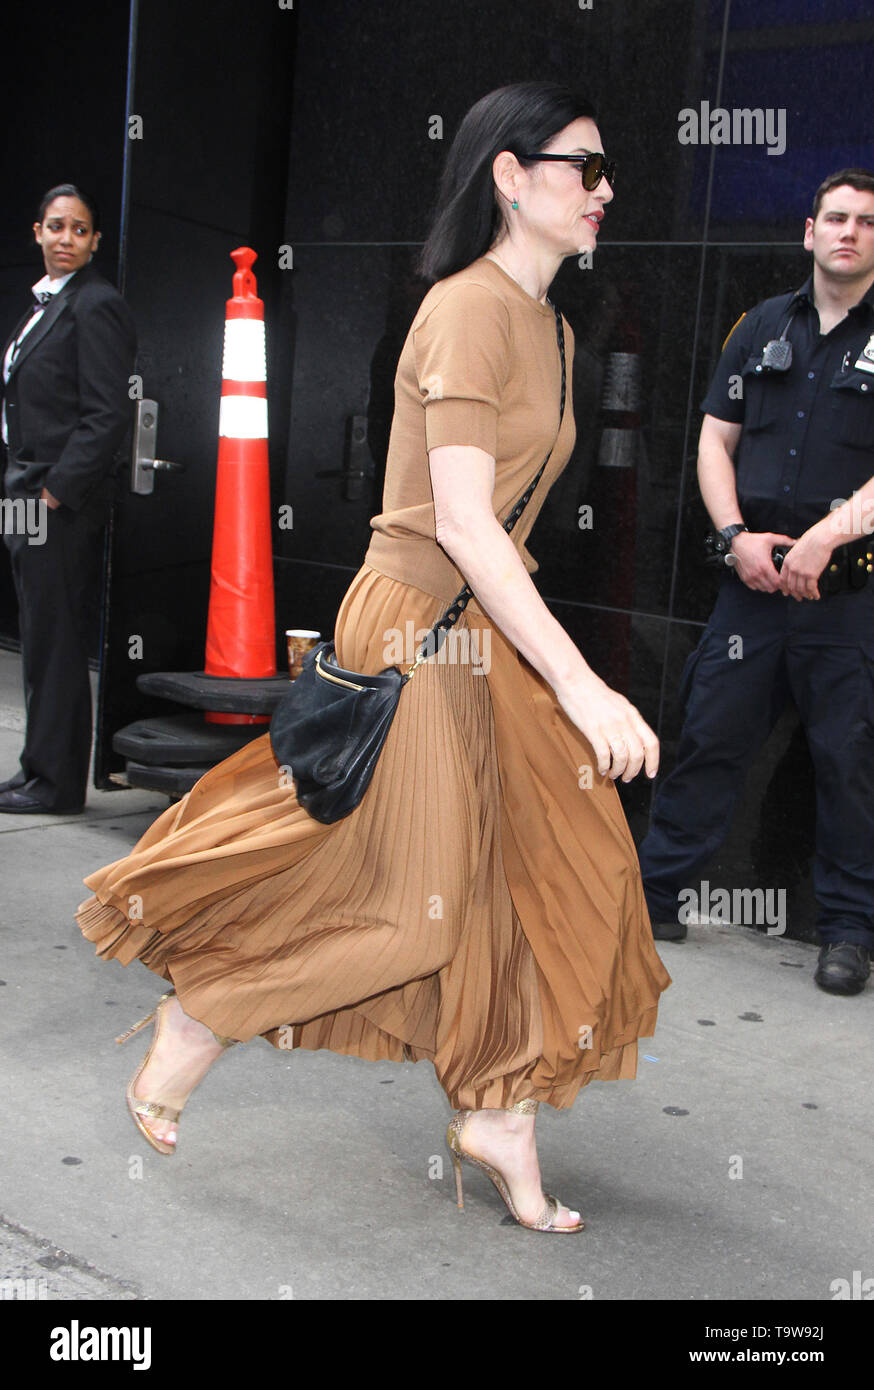 New York, USA. 20th May, 2019. NEW YORK, NY - May 20: Julianna Margulies at Good Morning America to talk about new series The Hot Zone in New York City on May 20, 2019. Credit: RW/MediaPunch Credit: MediaPunch Inc/Alamy Live News - Stock Image